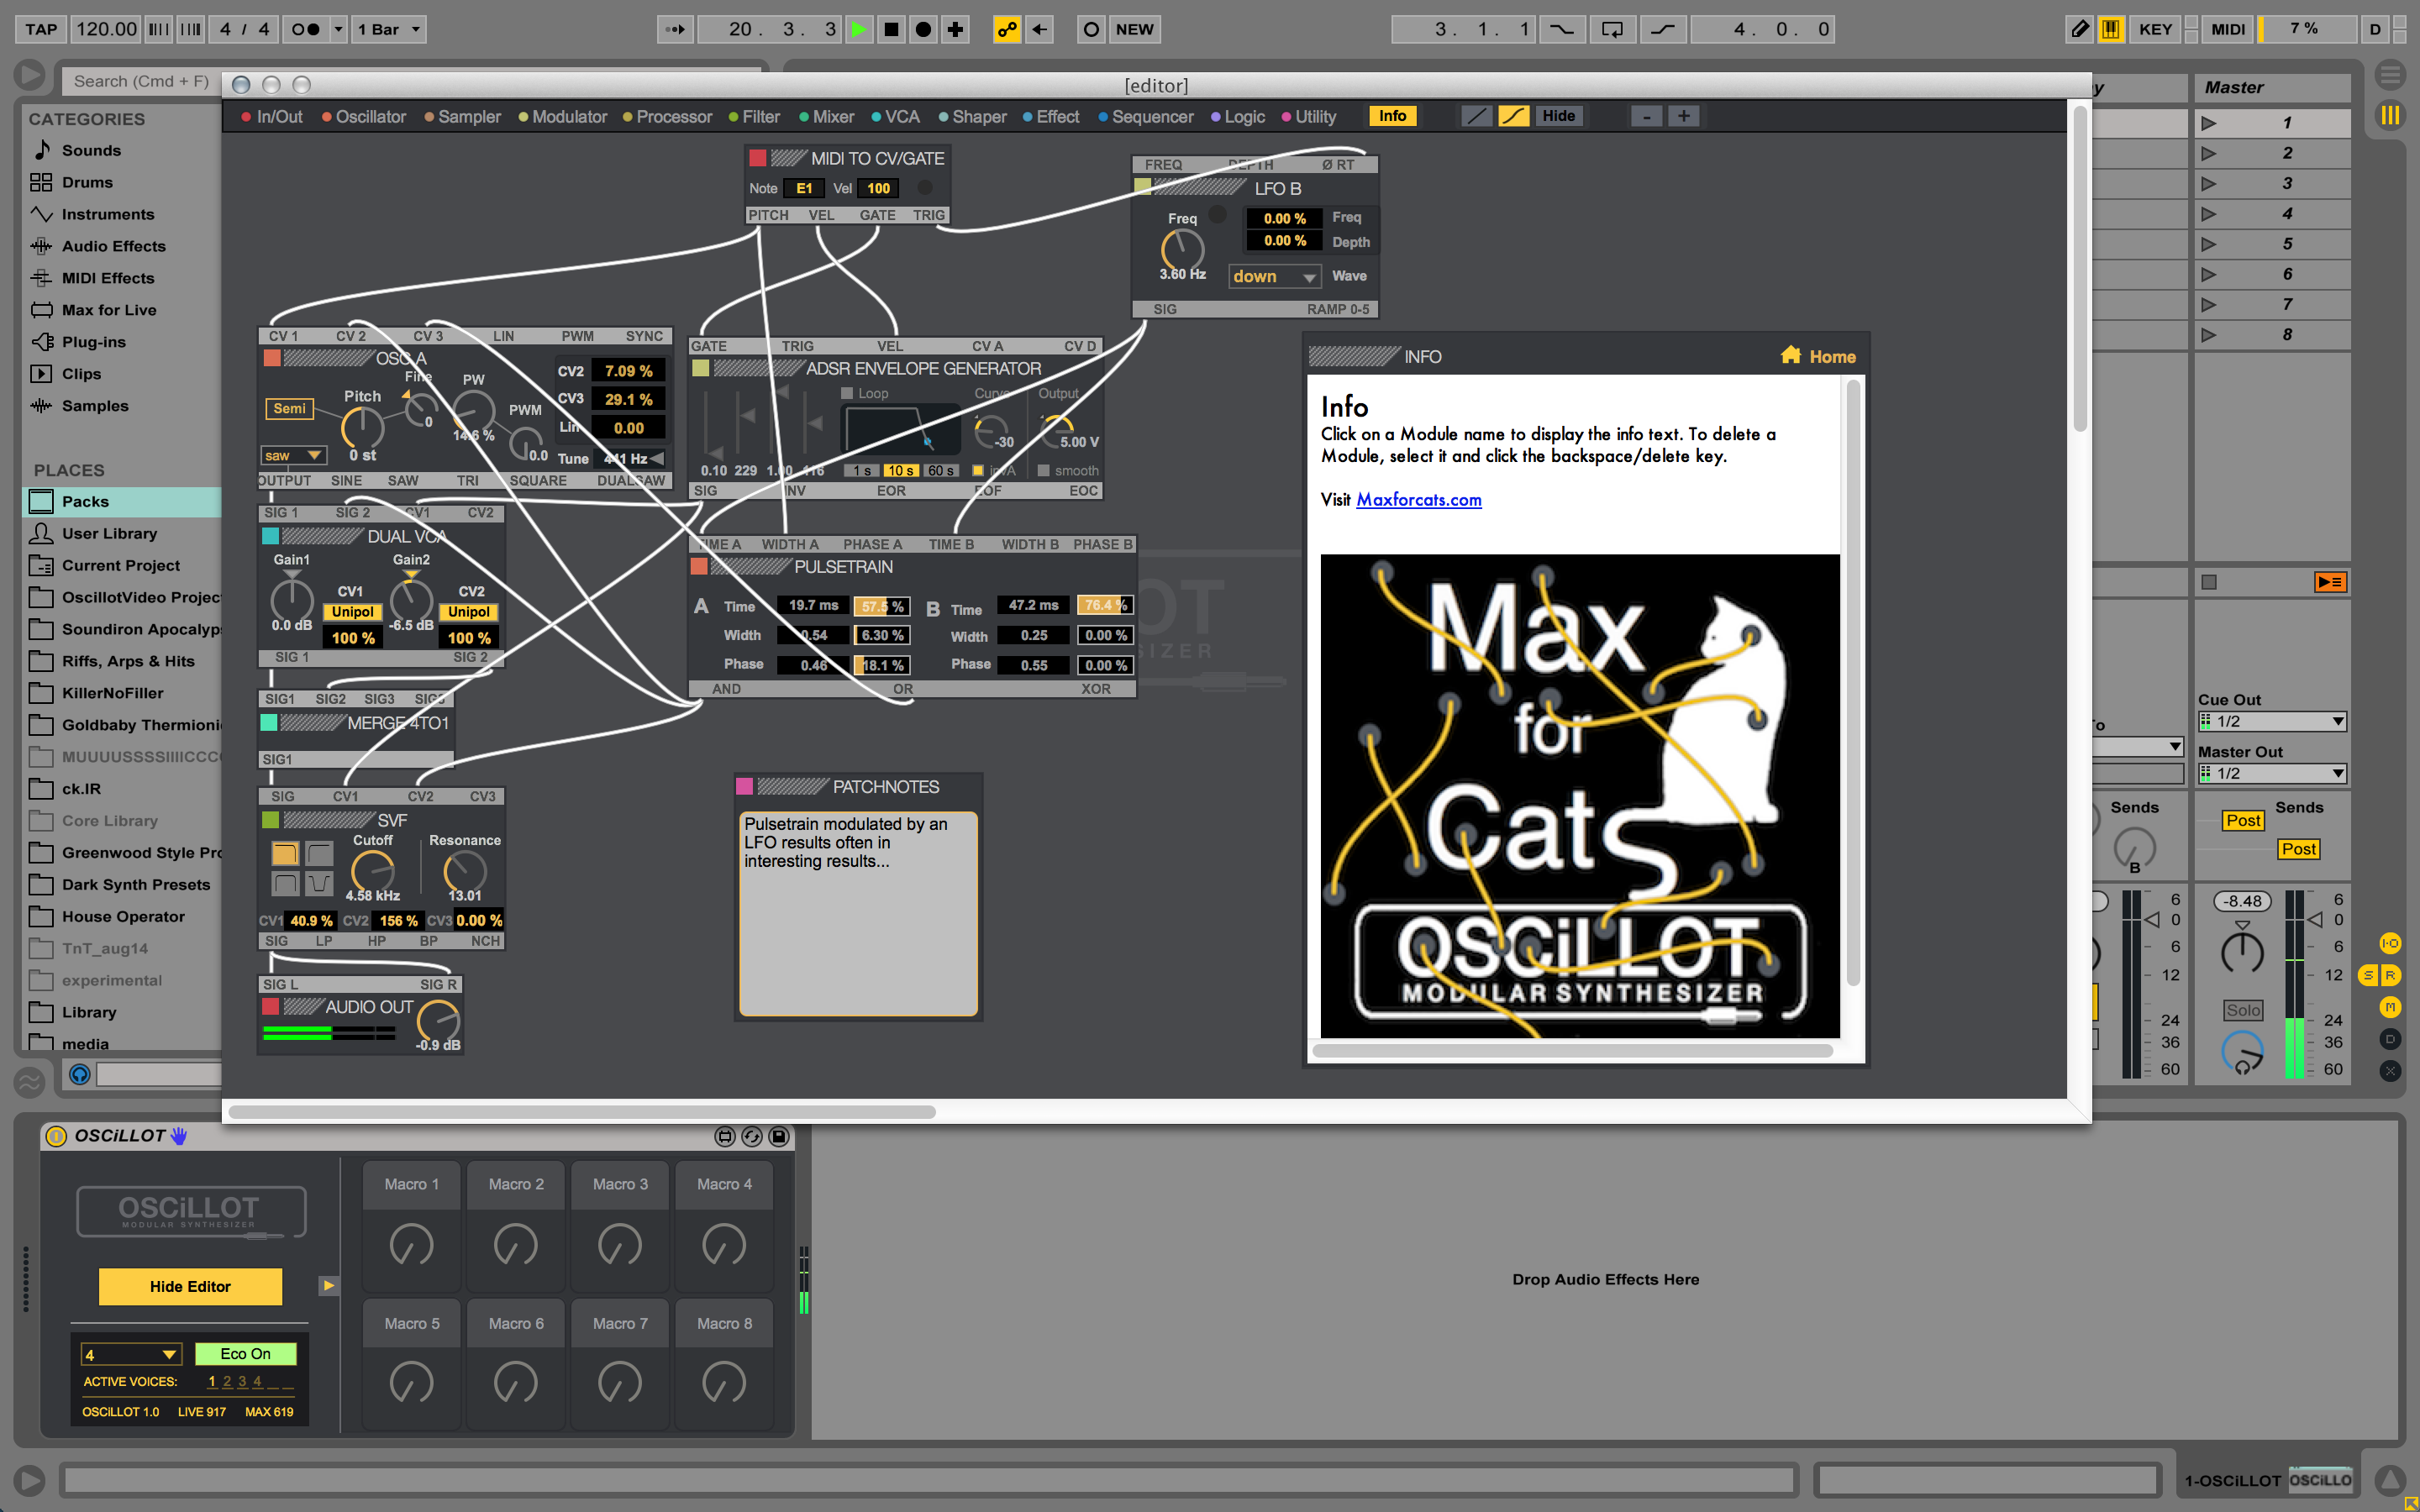 ableton launches oscillot modular synthesizer system. Black Bedroom Furniture Sets. Home Design Ideas